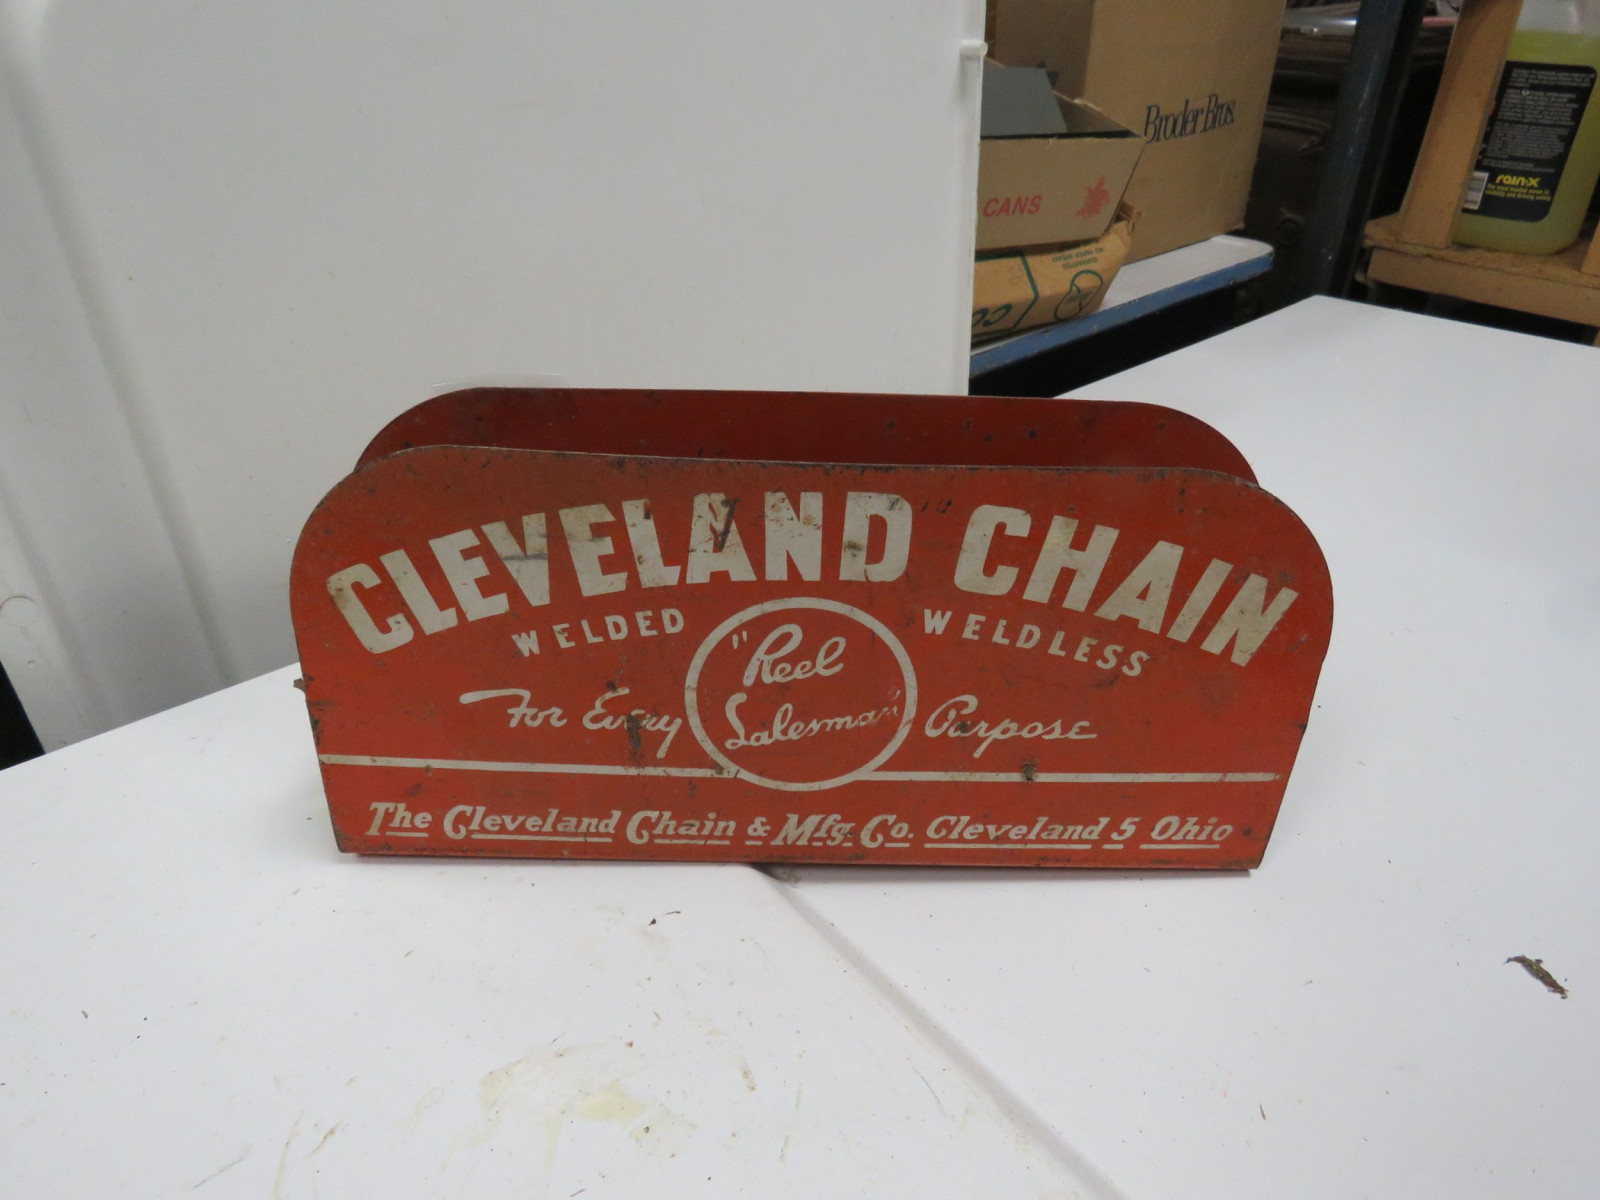 Cleveland Chains Display - Image 2